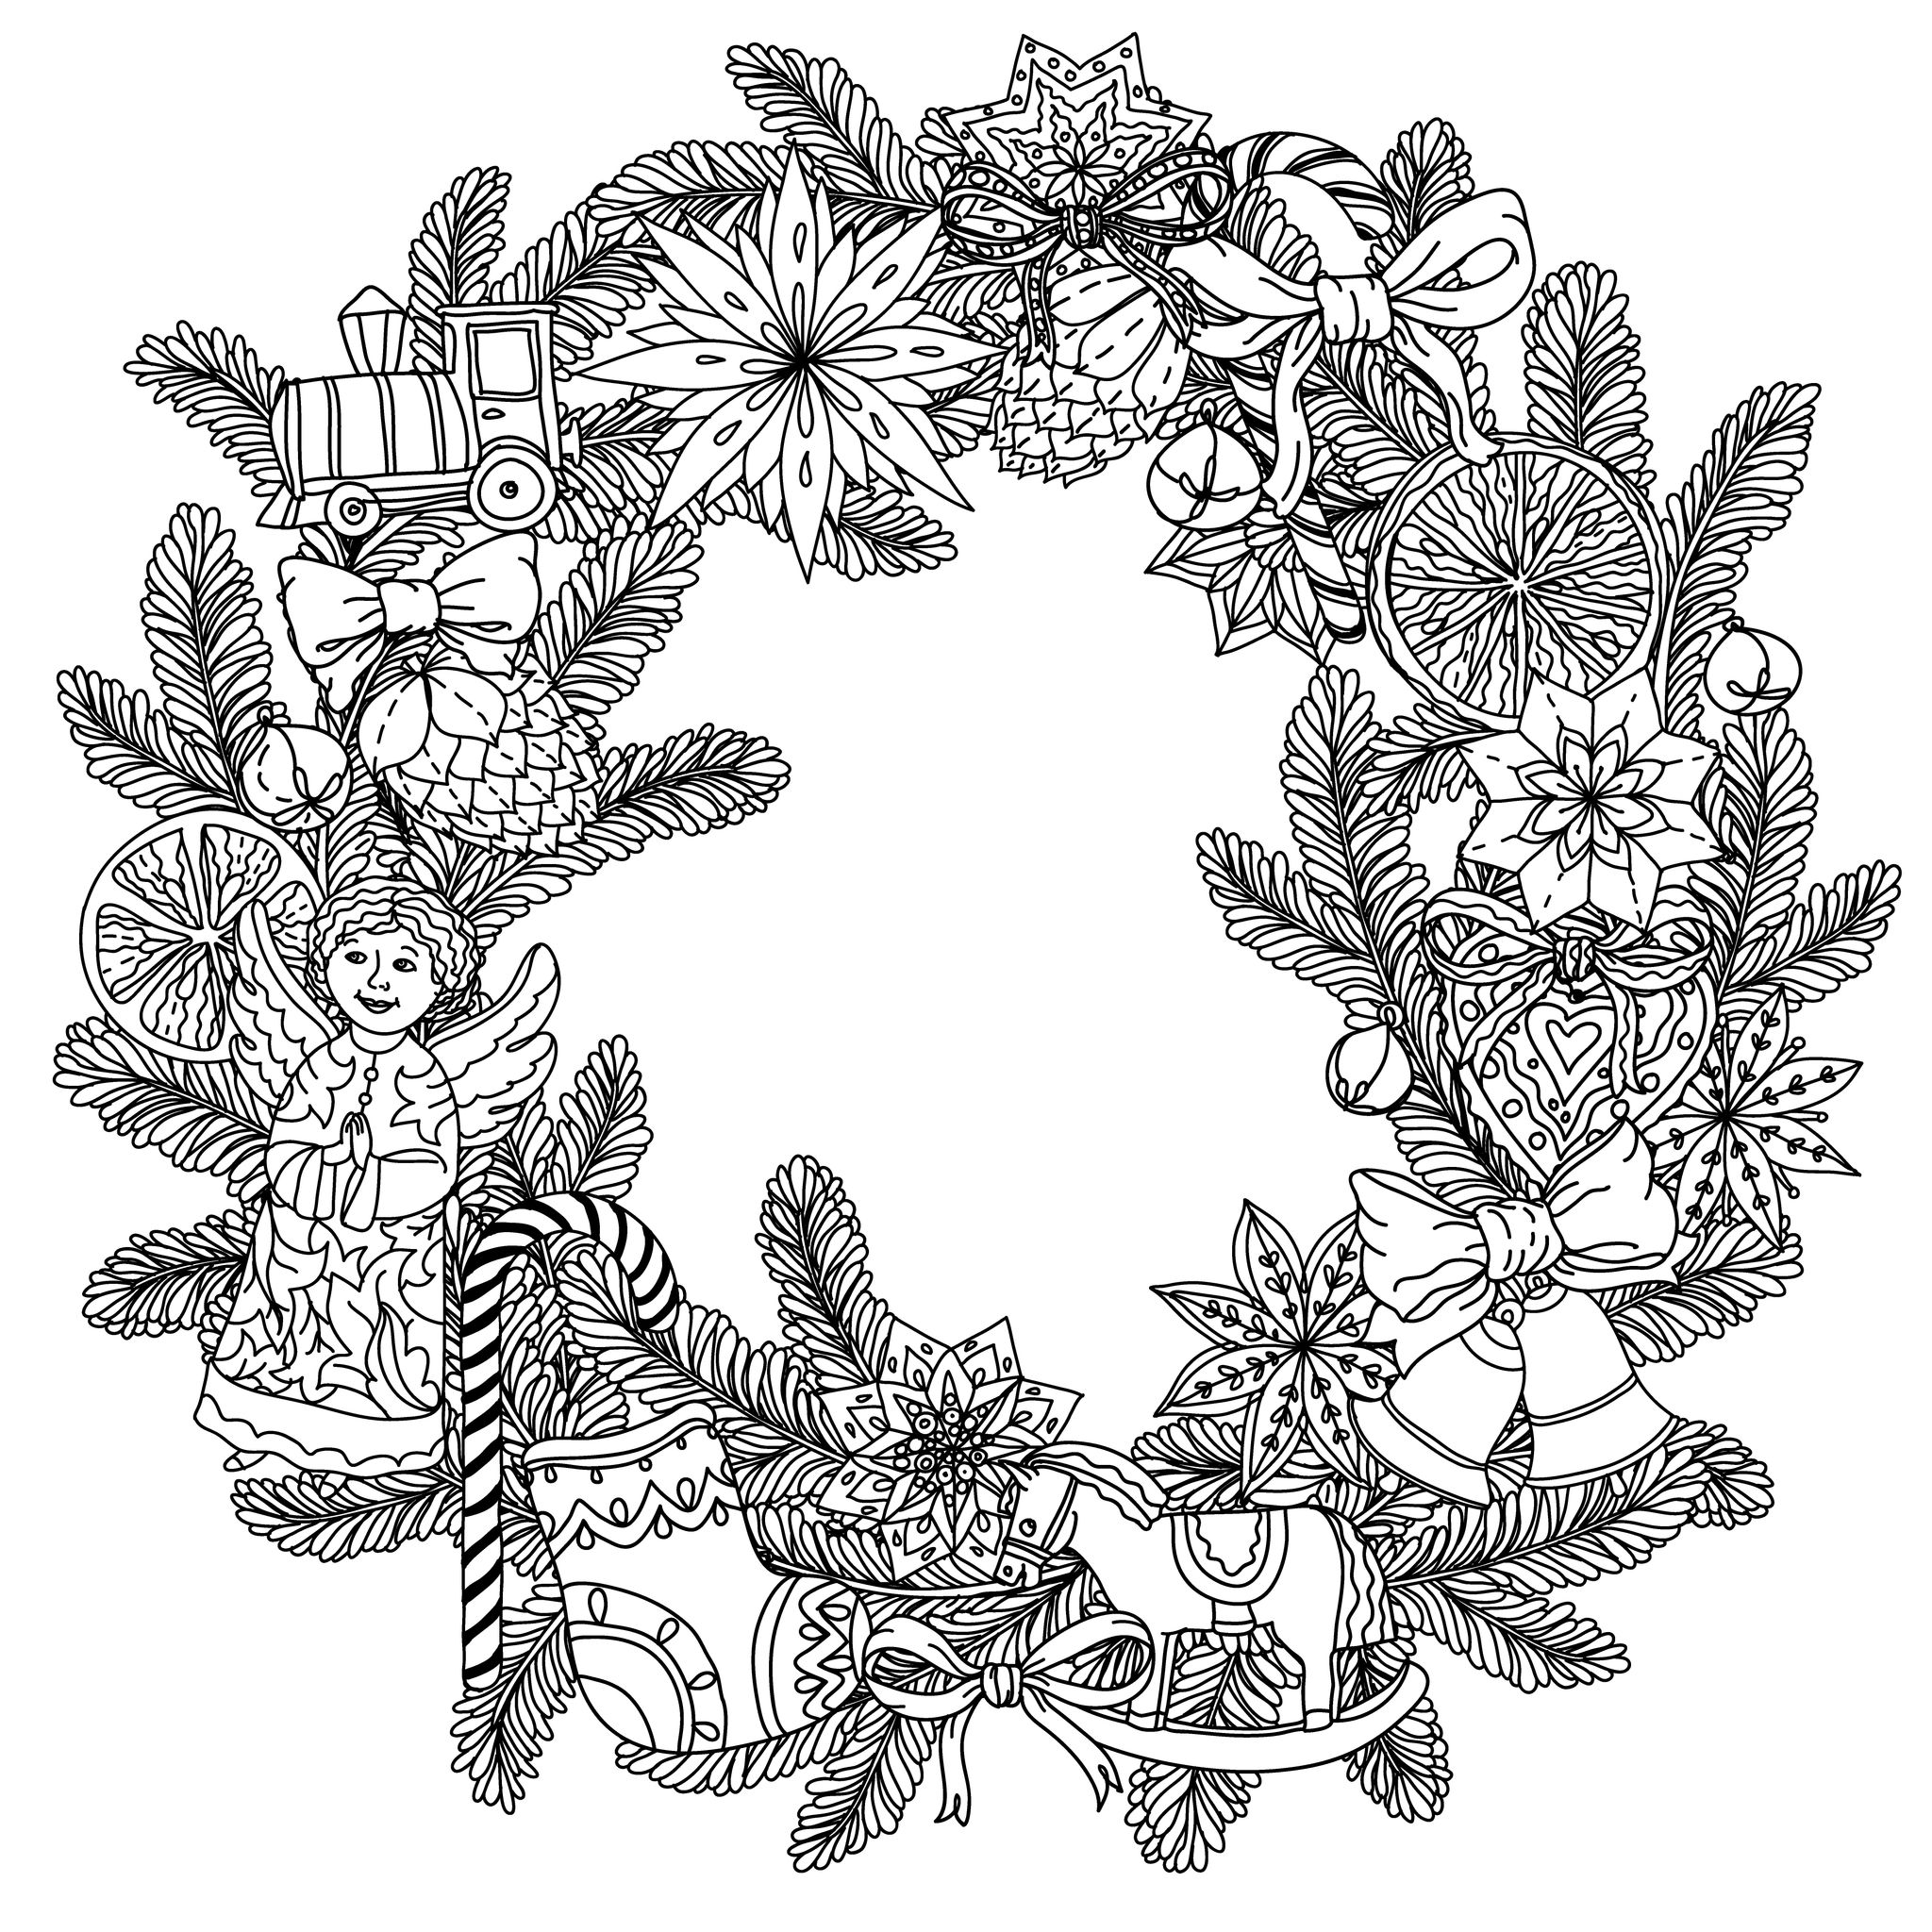 beautiful christmas wreath with decorative items with angel stars socks and gifts - Christmas Coloring Pages For Adults